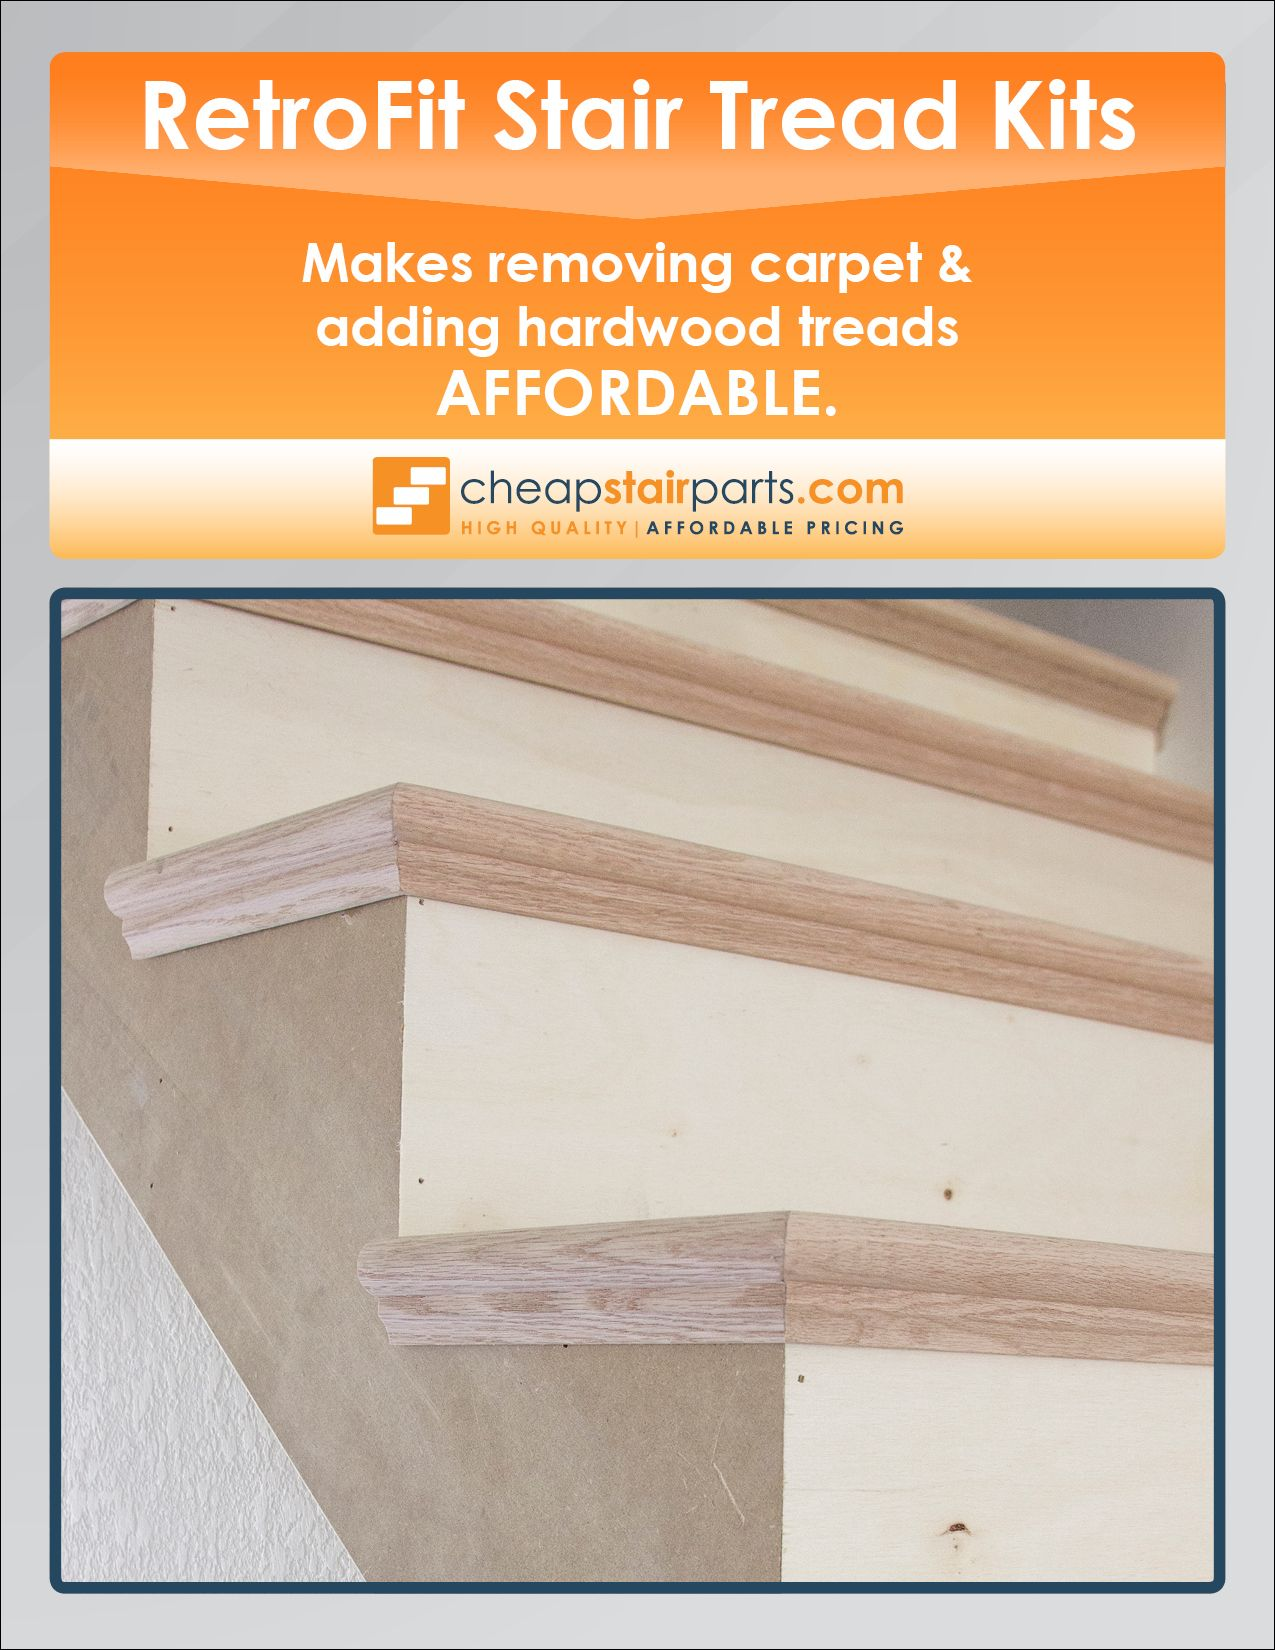 Pin By Cheap Stair Parts On RetroFit Stair Tread Kits | Pinterest | Stairs, Stair  Treads And Kit